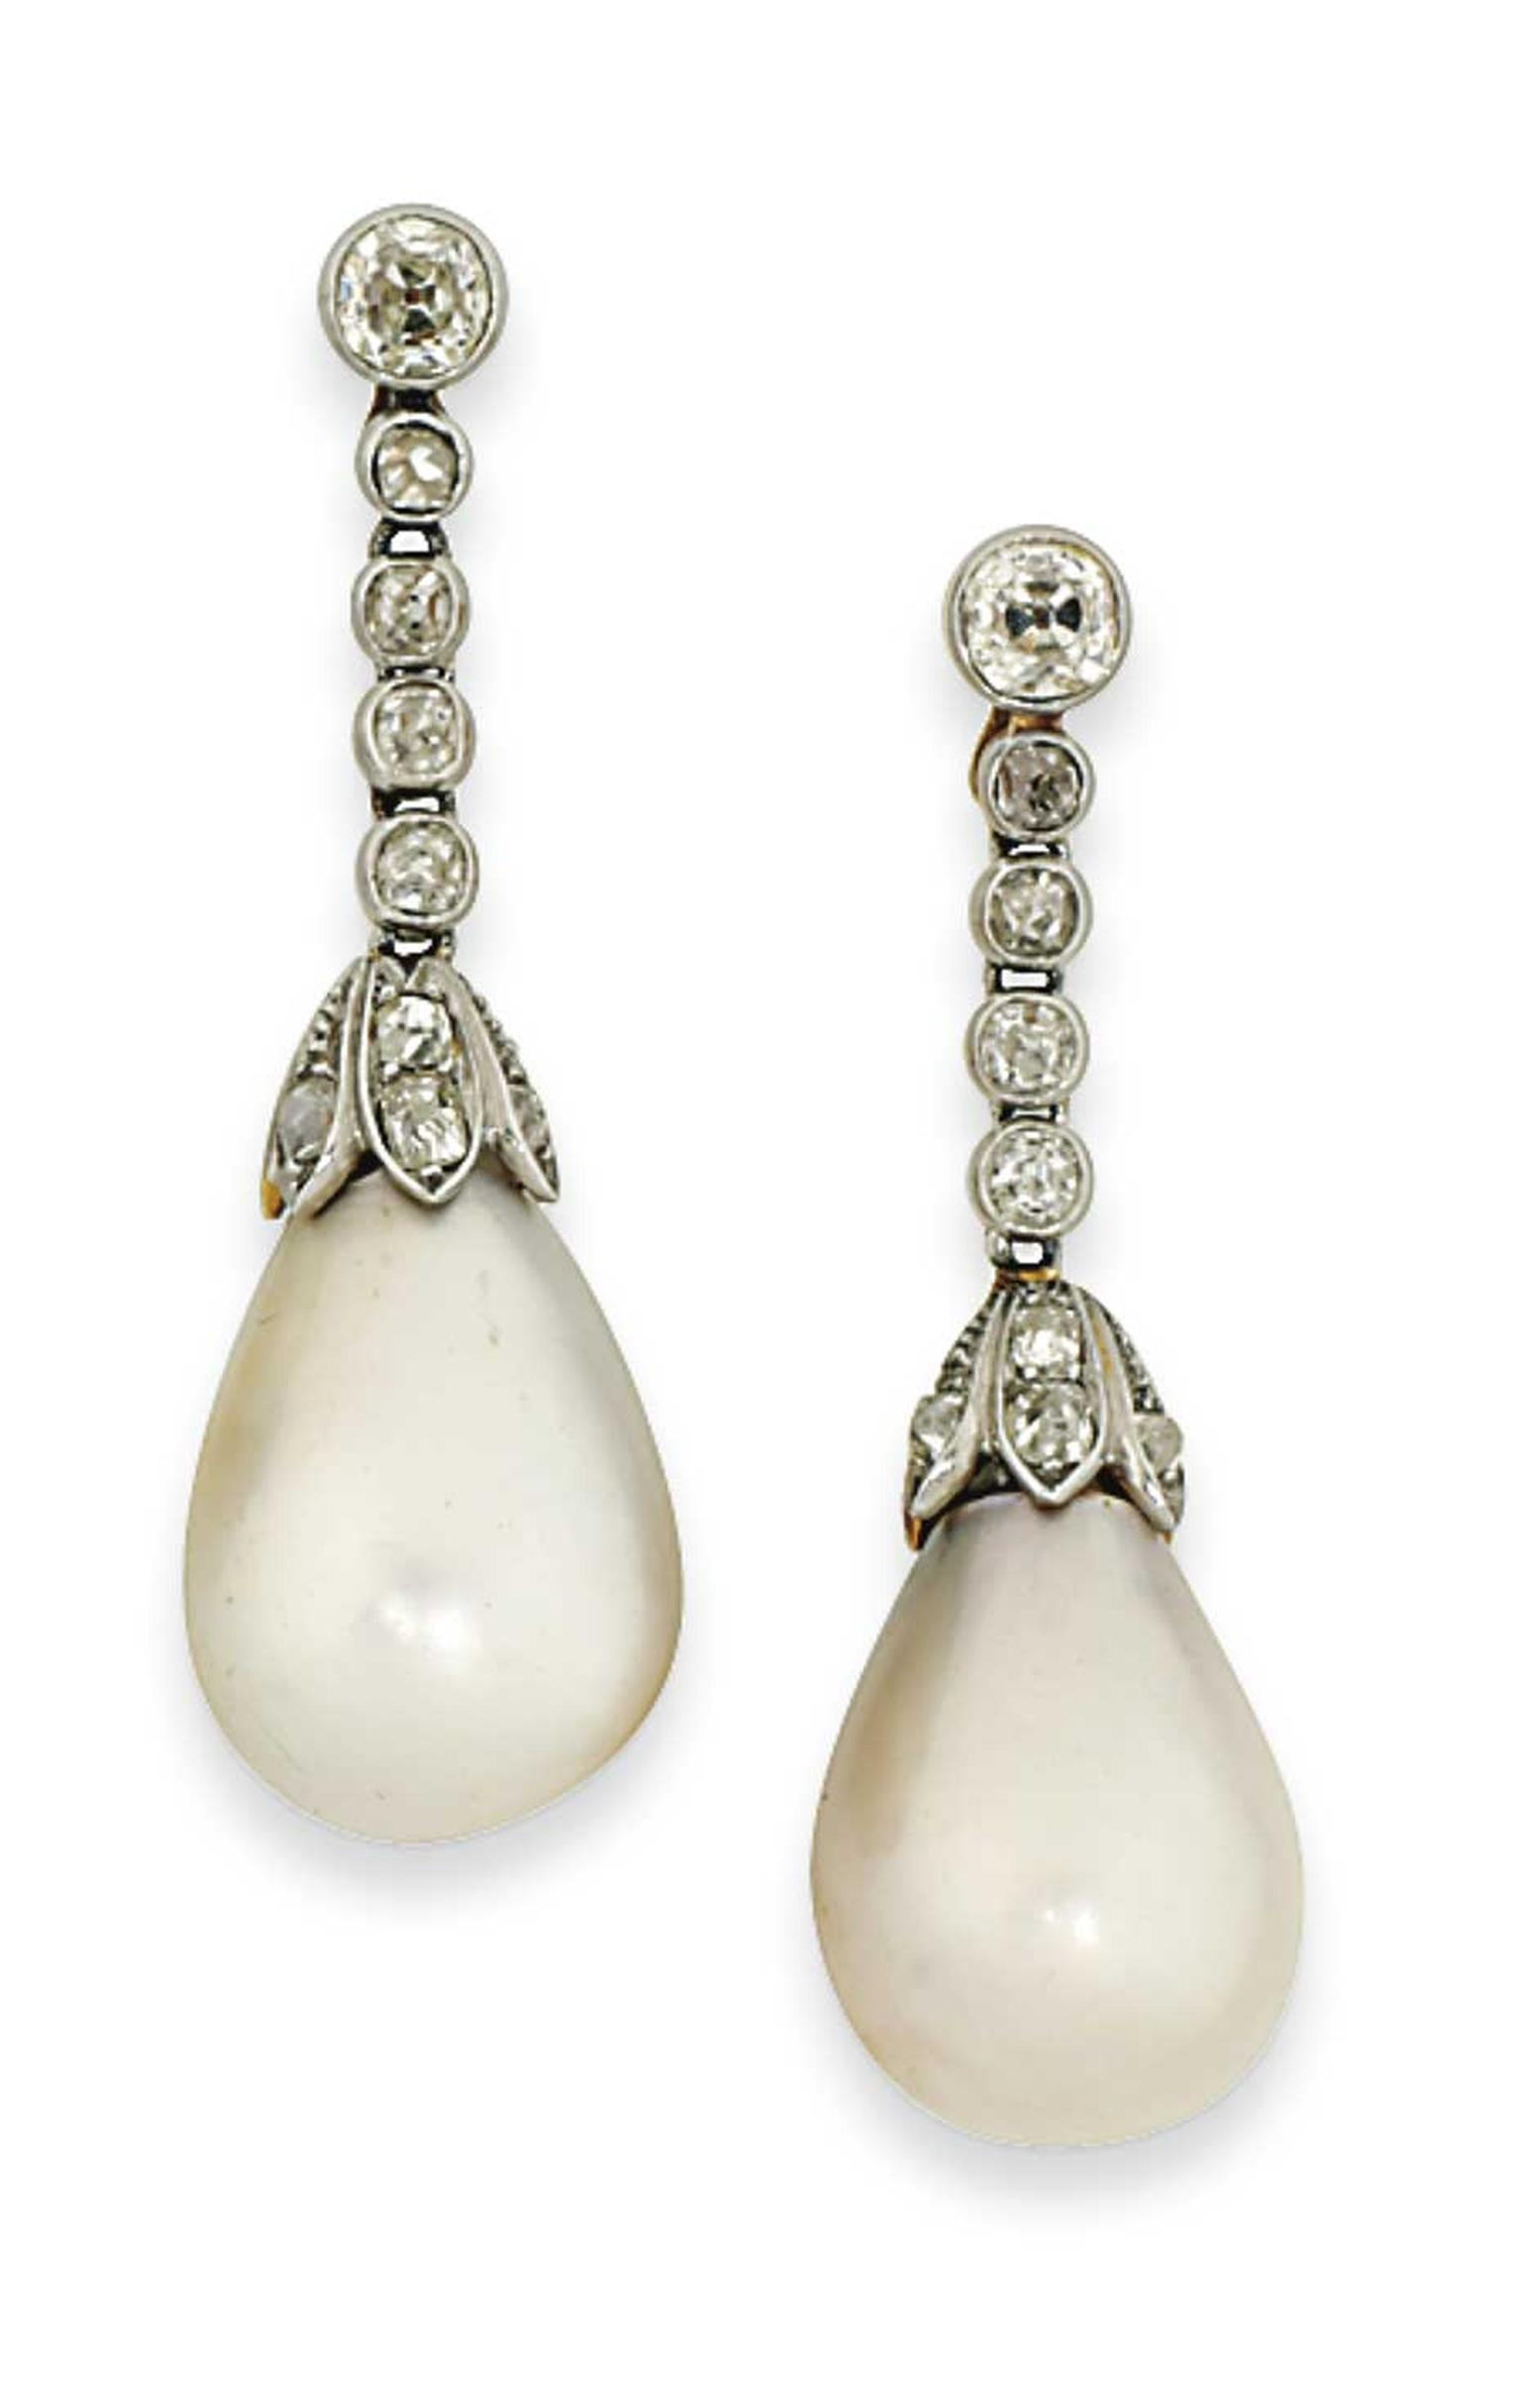 Lot 43 is a pair of 19th century natural pearl and diamond earrings (estimate: £30,000-40,000). Christie's Important Jewels Sale on 26 November at King Street in London.